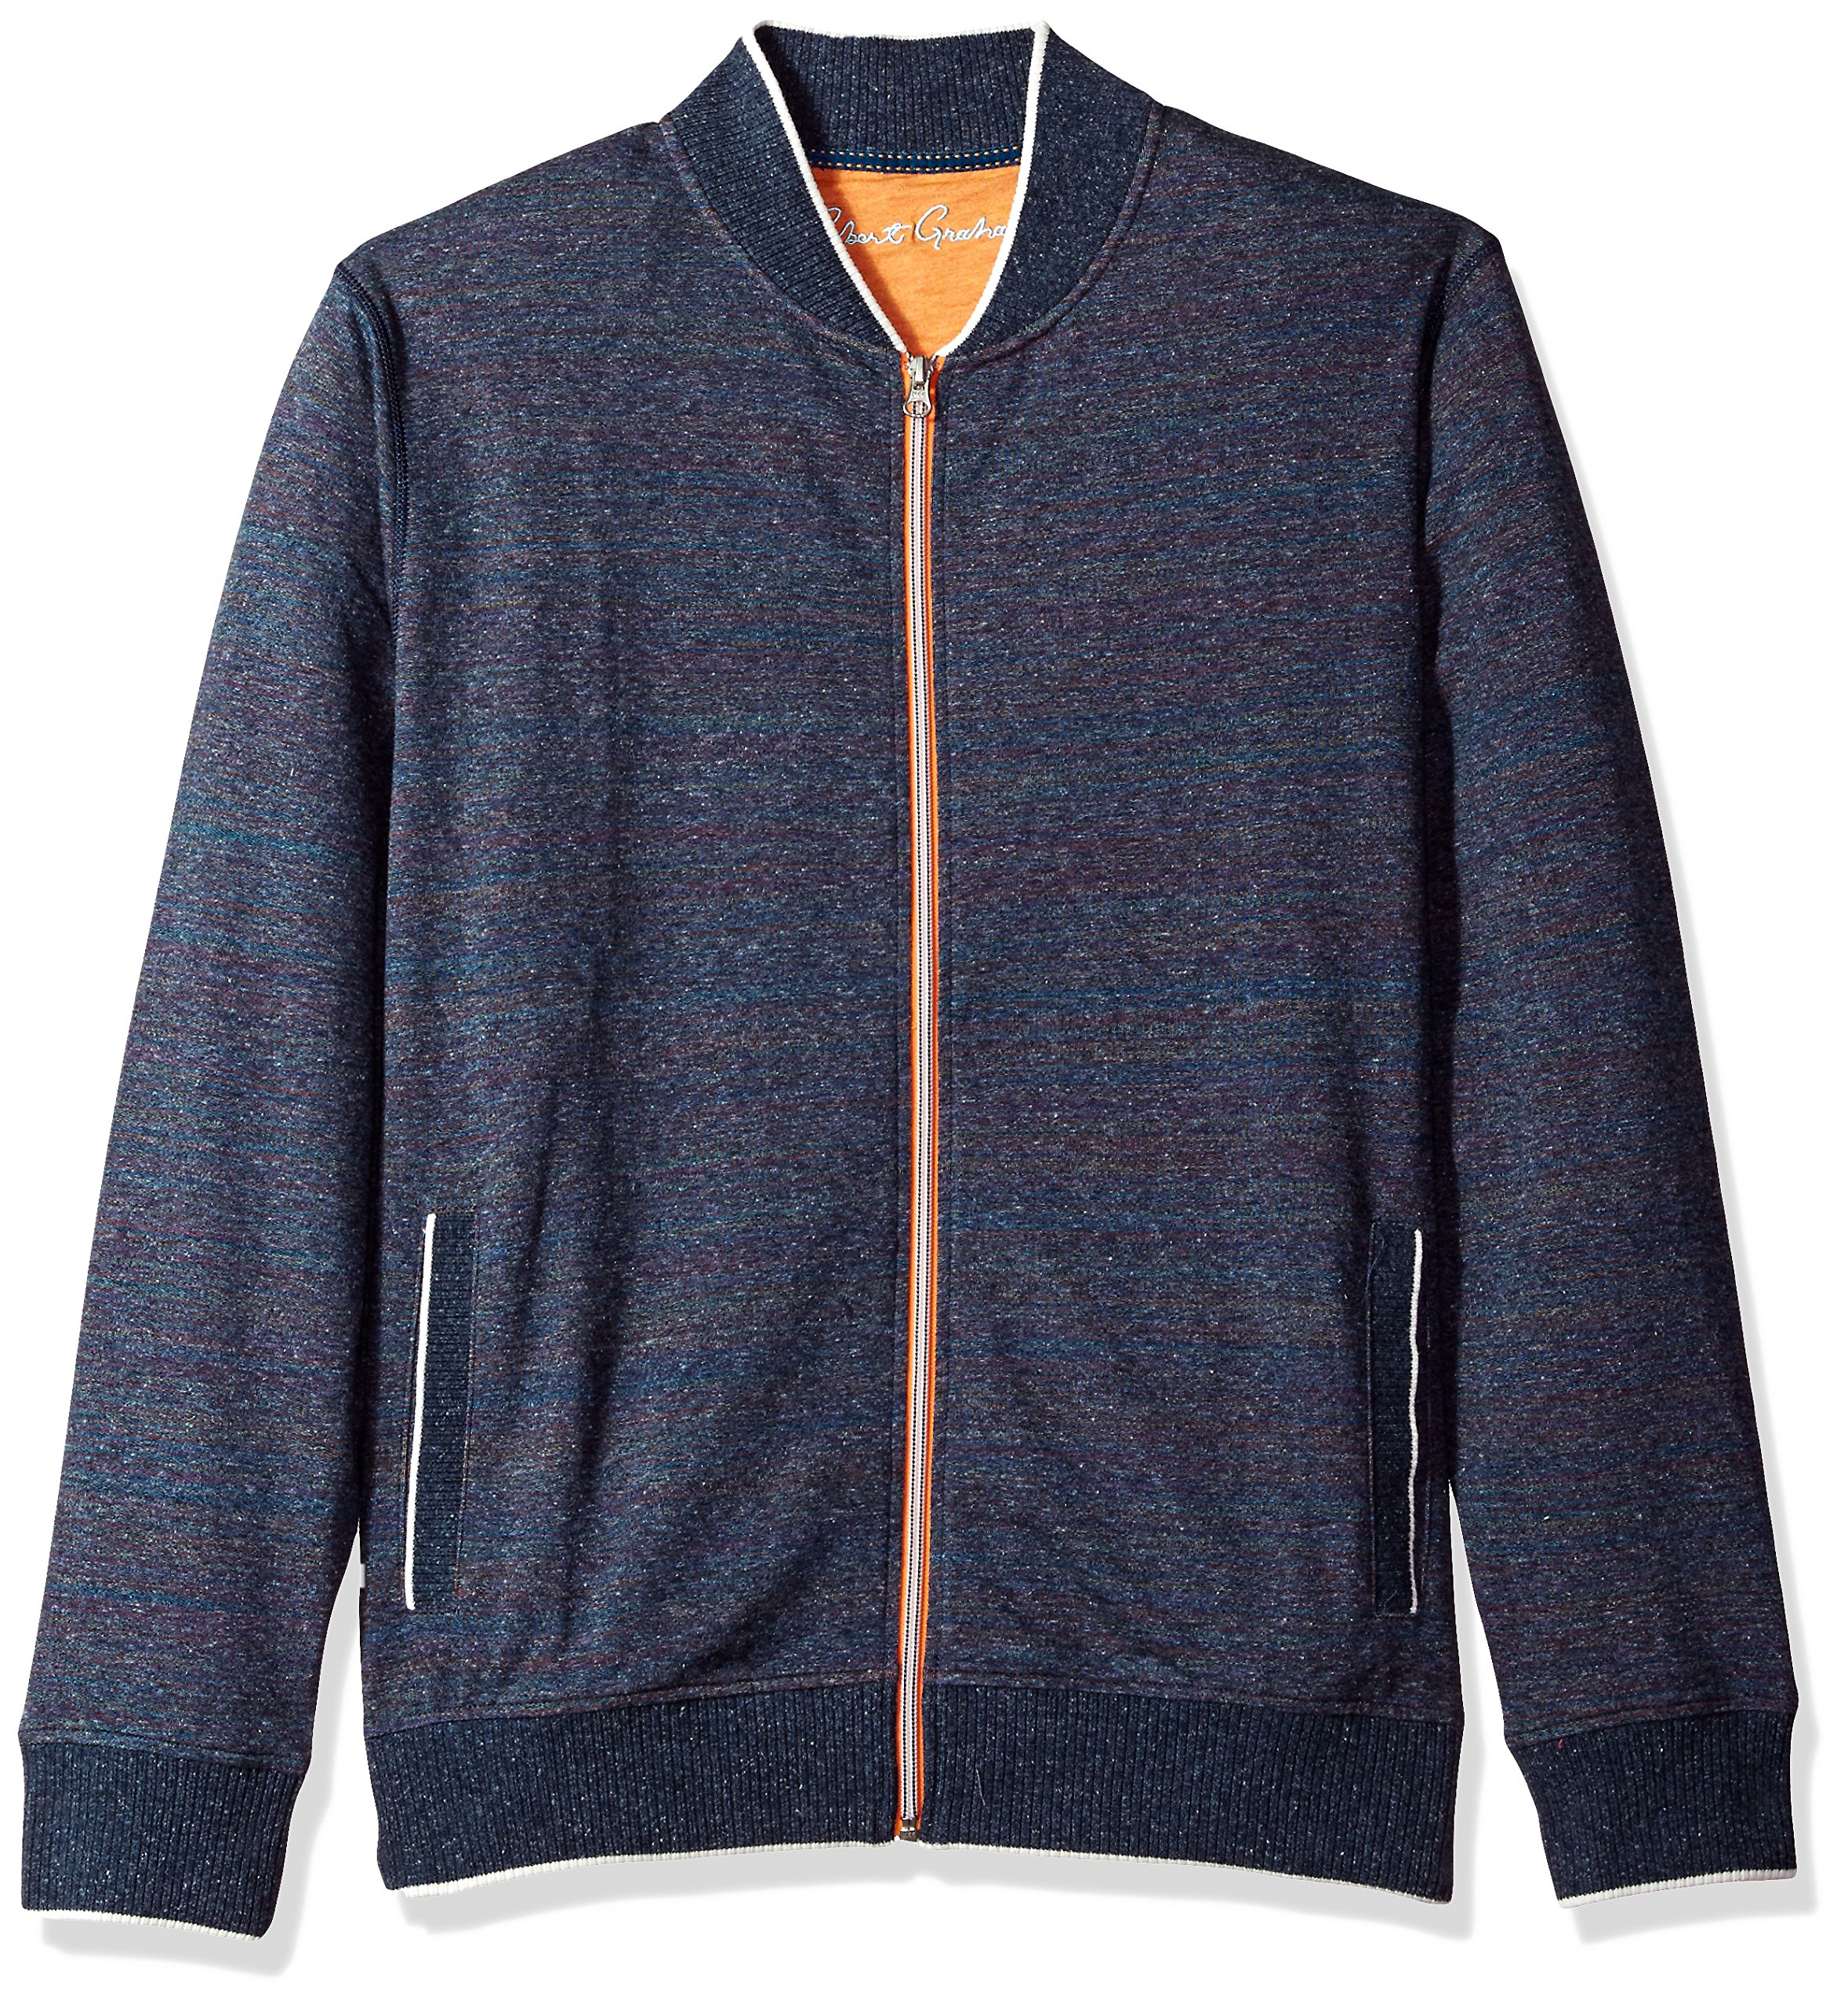 Robert Graham Men's Vagabond Cotton Full Zip Knit, Heather Navy, Large by Robert Graham (Image #1)